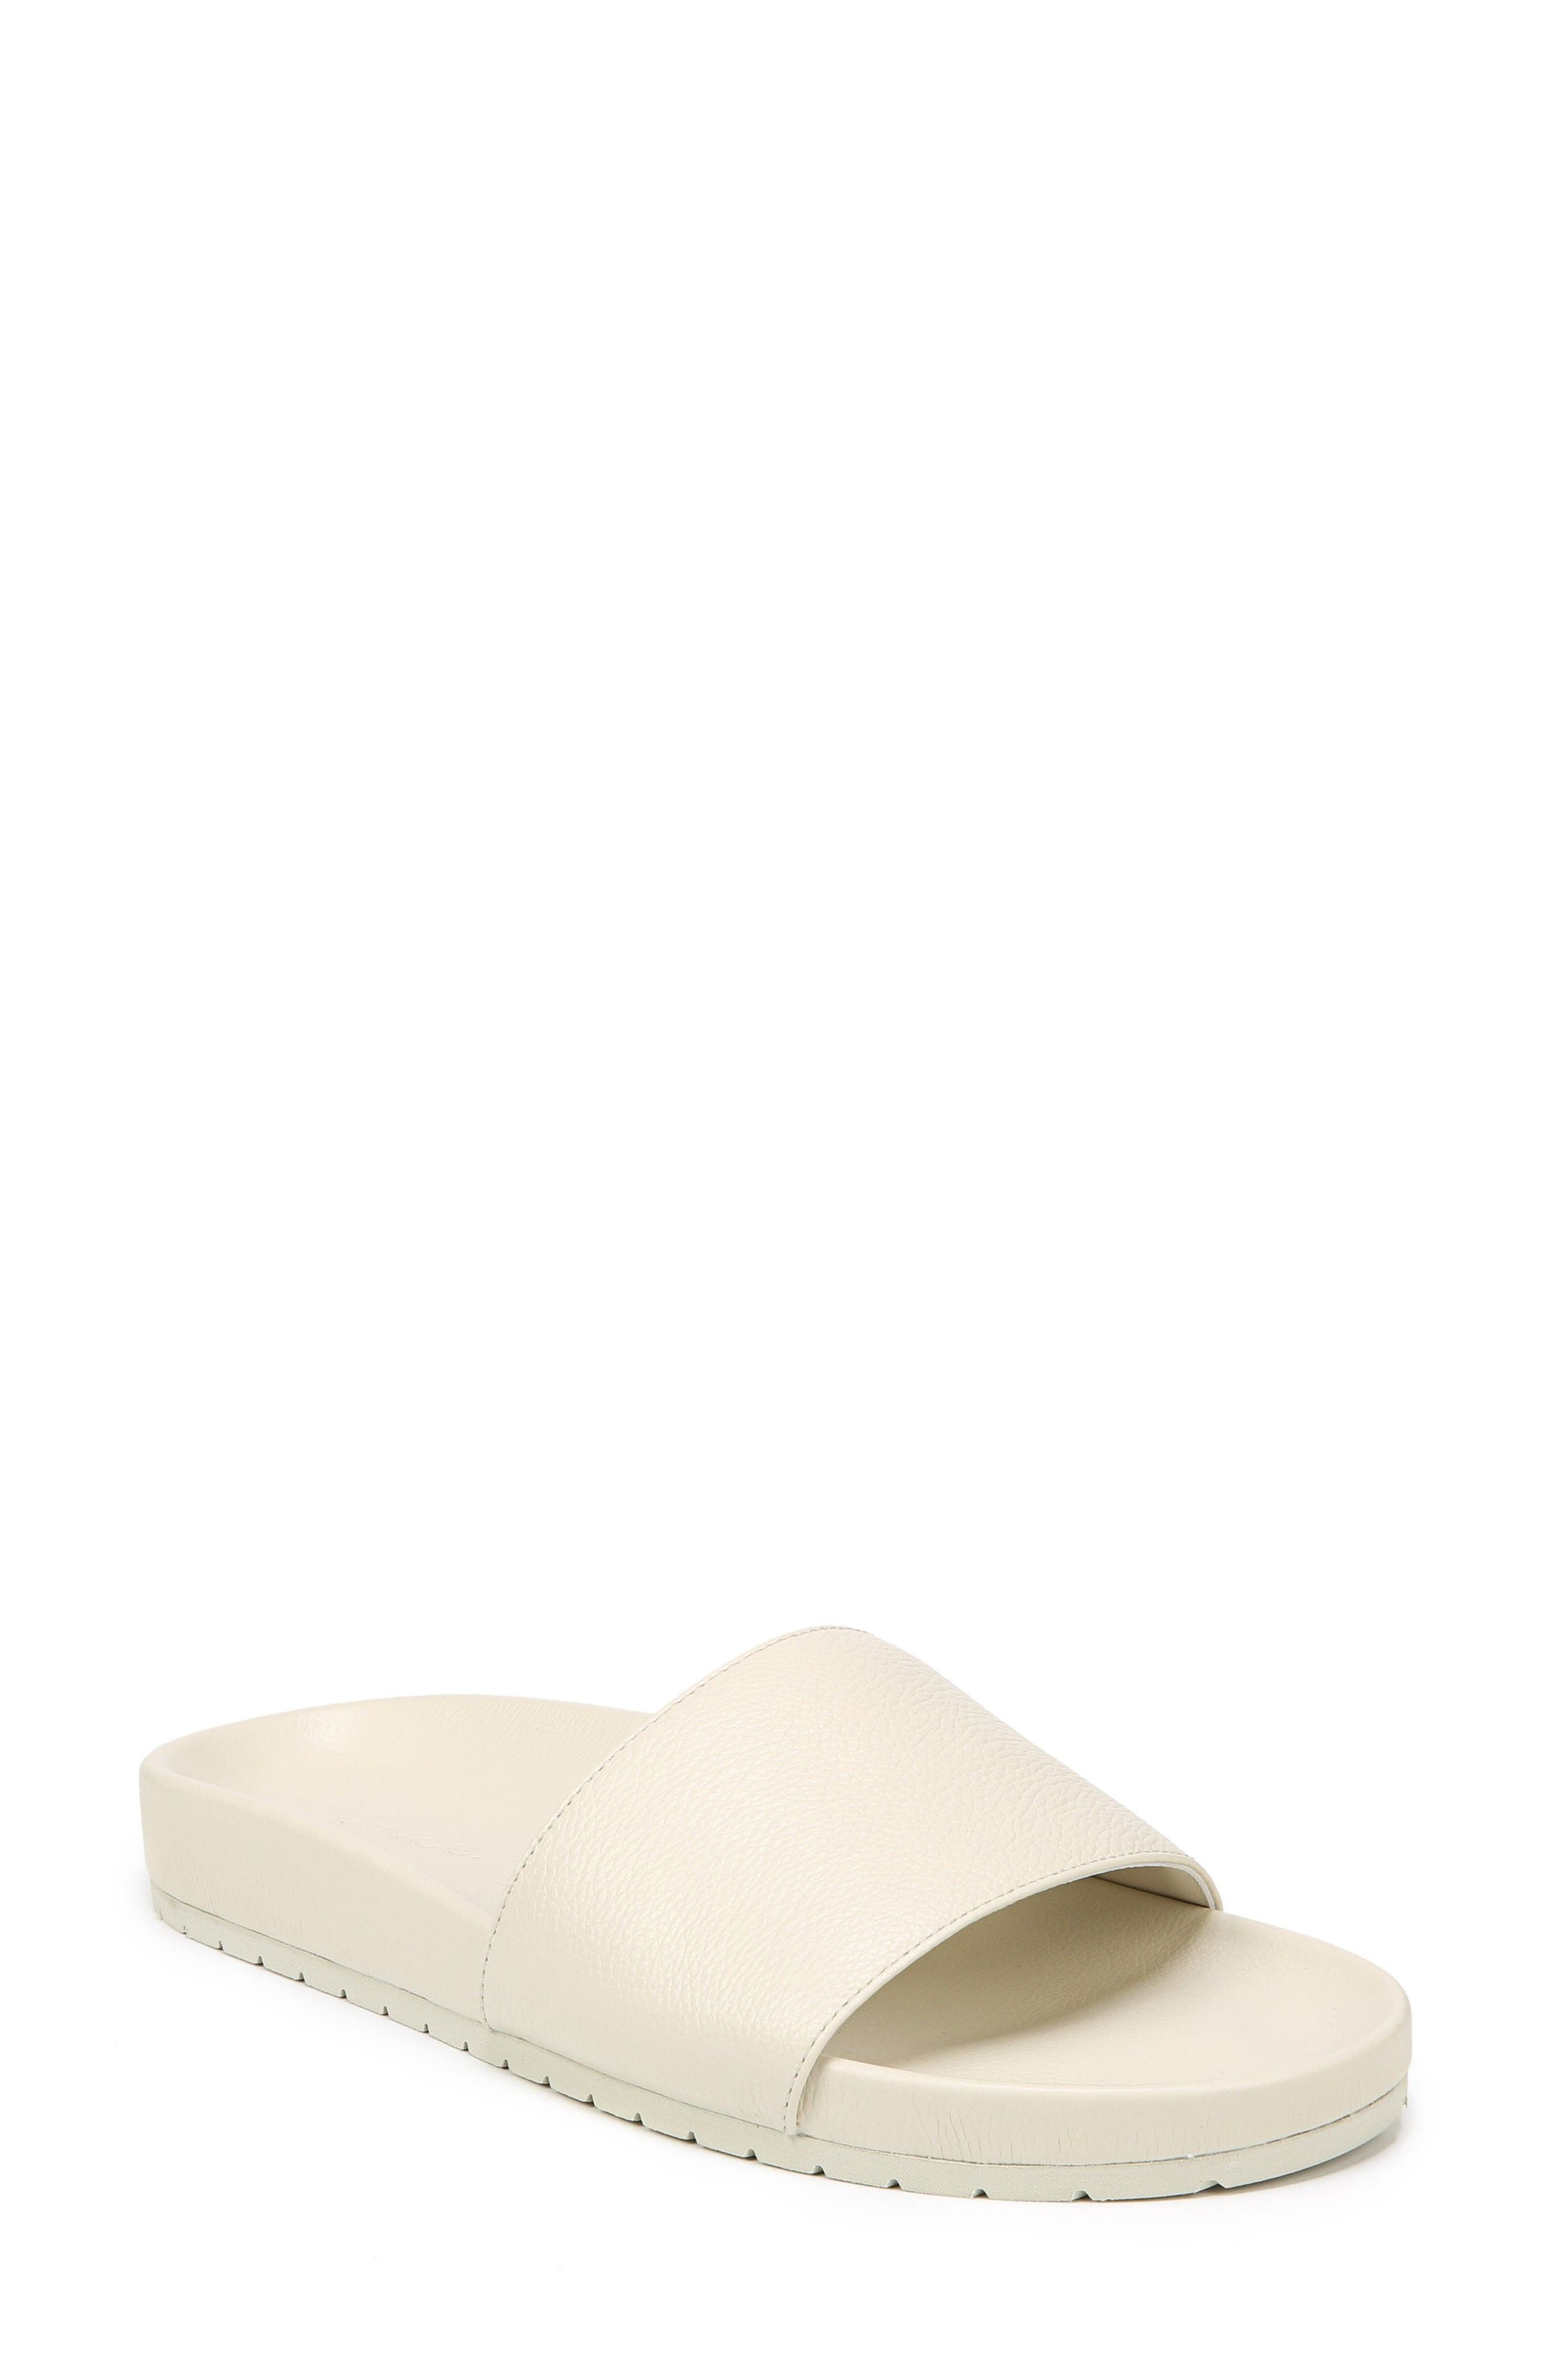 Gavin Slide Sandal,                             Main thumbnail 1, color,                             Ecru